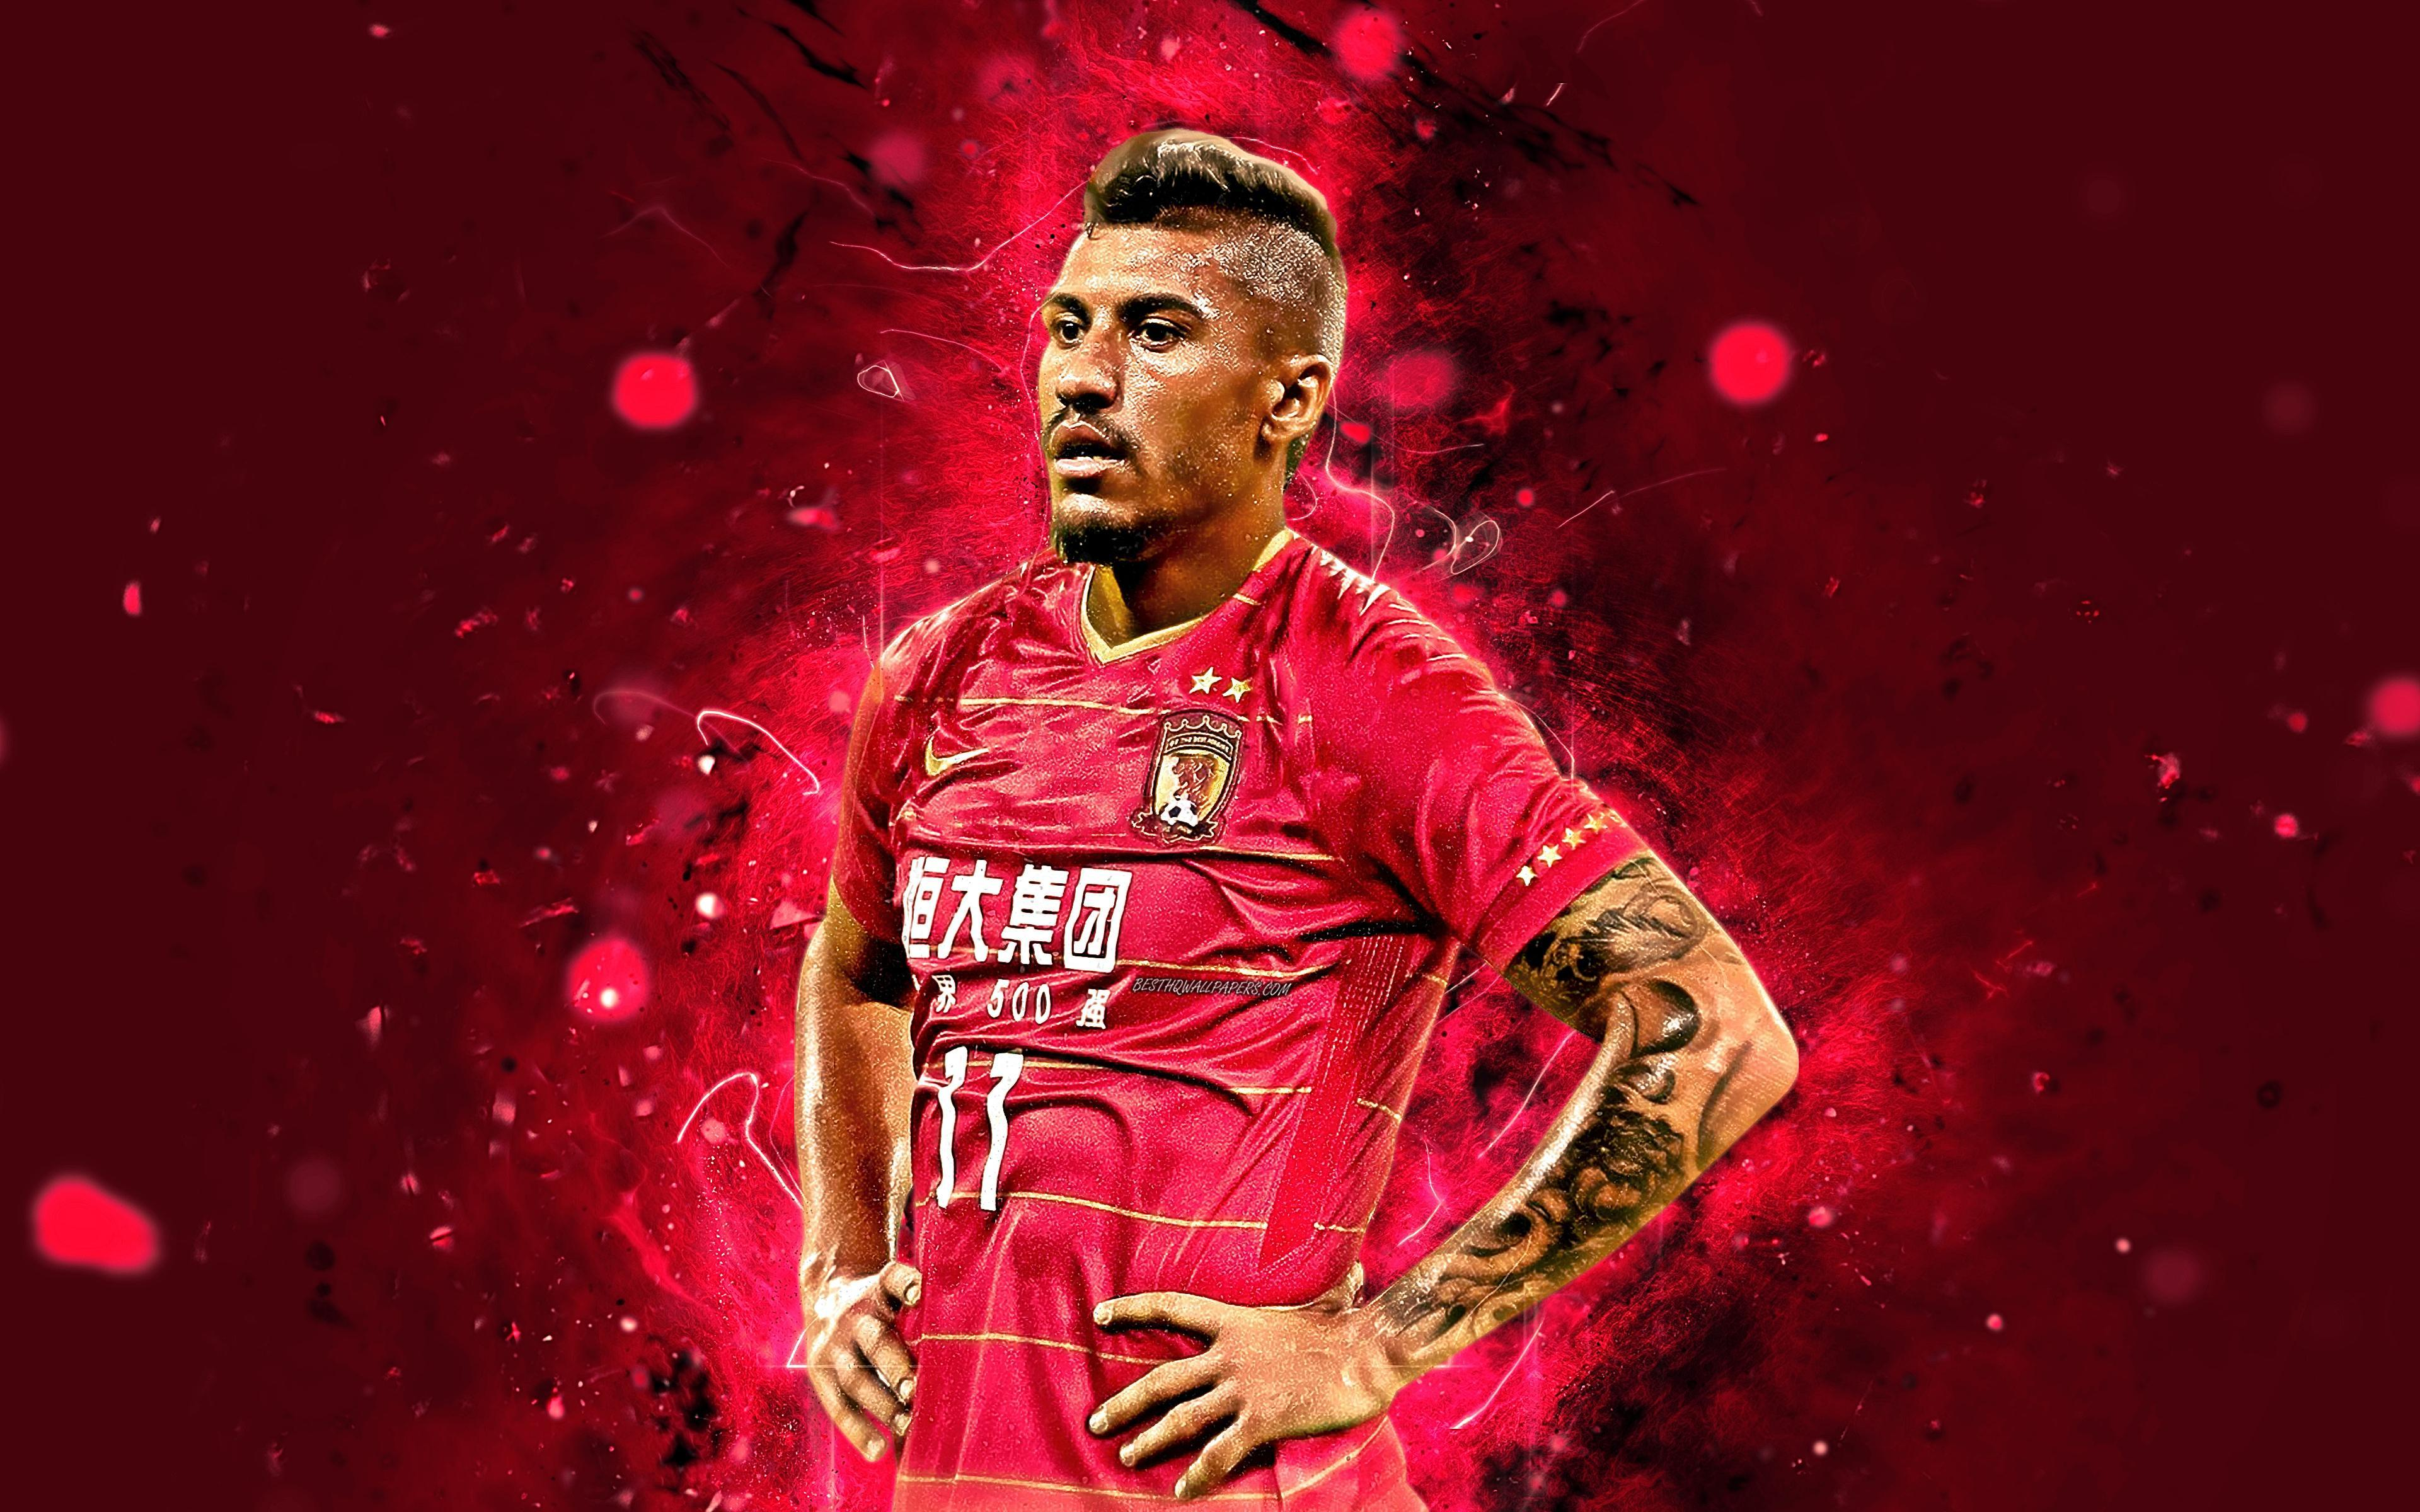 Download wallpapers 4k, Paulinho, abstract art, football stars